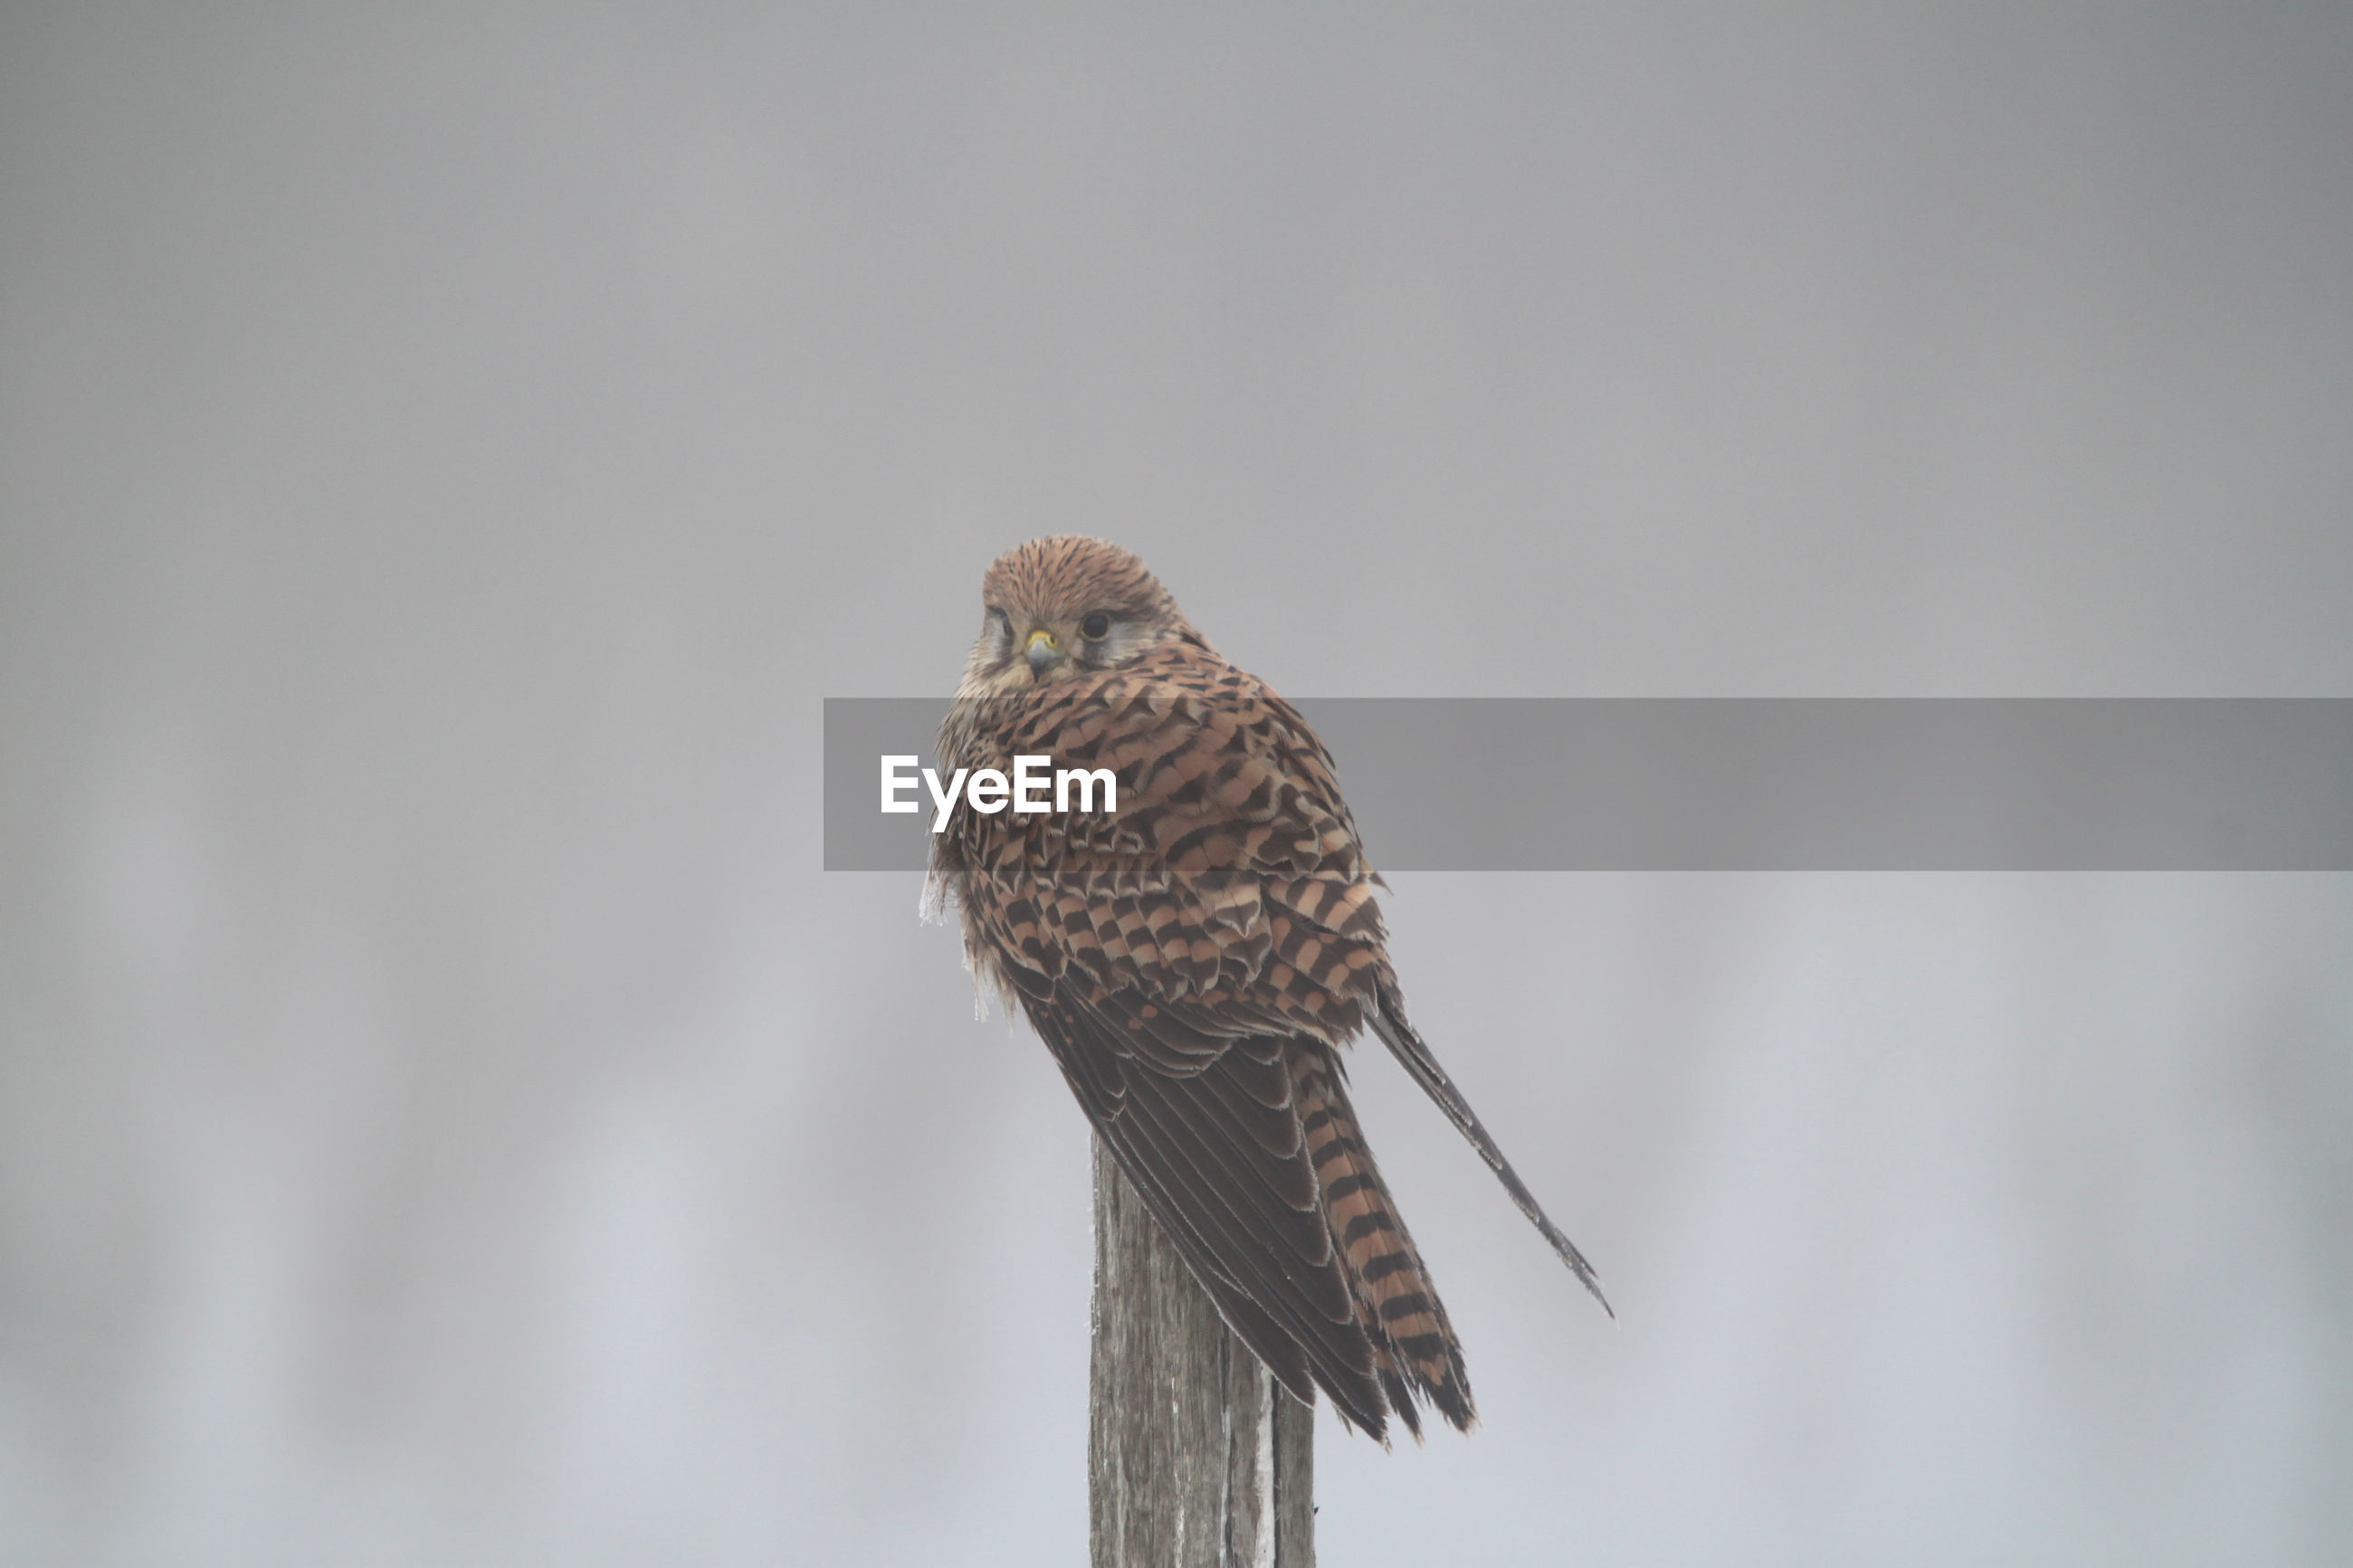 LOW ANGLE VIEW OF OWL PERCHING ON WOODEN POST